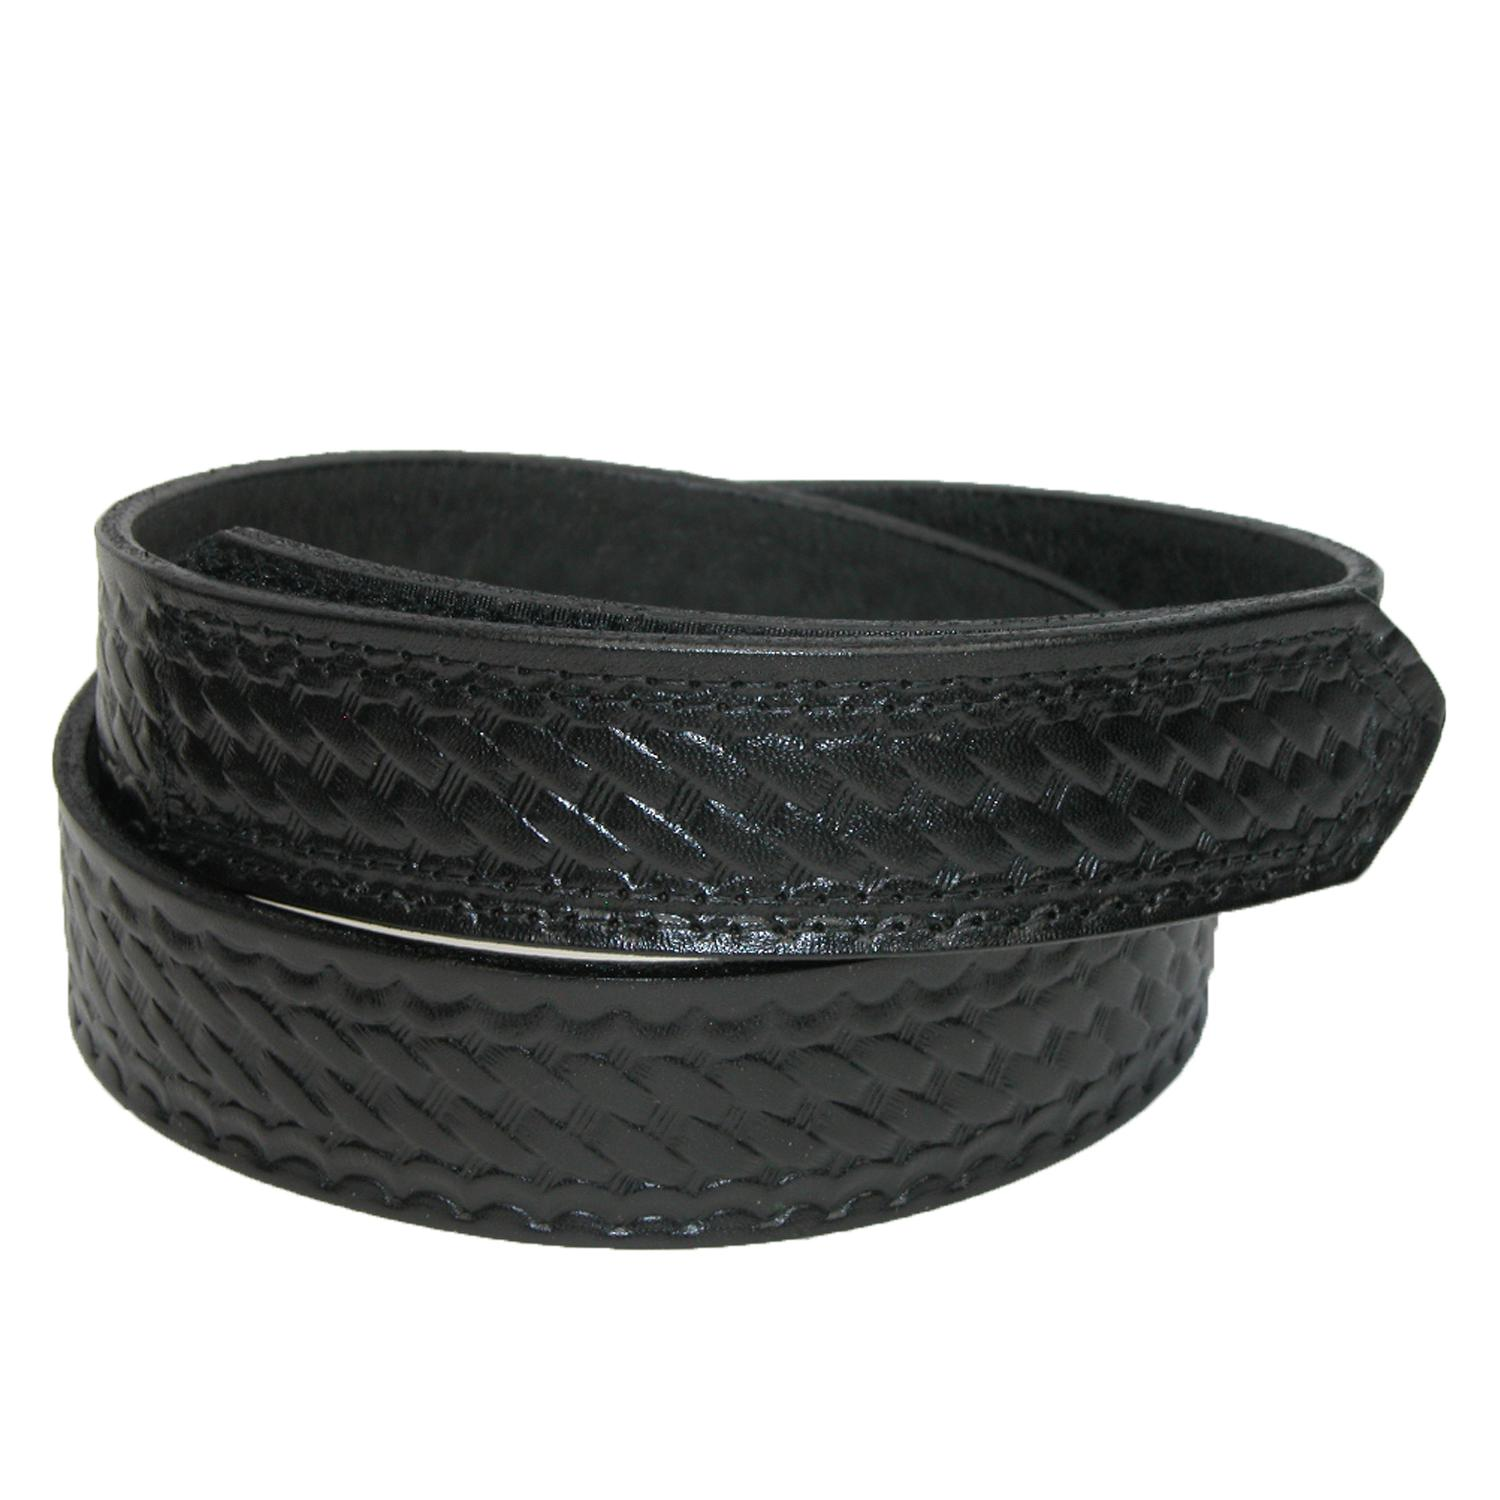 Boston Leather Men's Leather Basketweave Hook And Loop Mechanics Belt